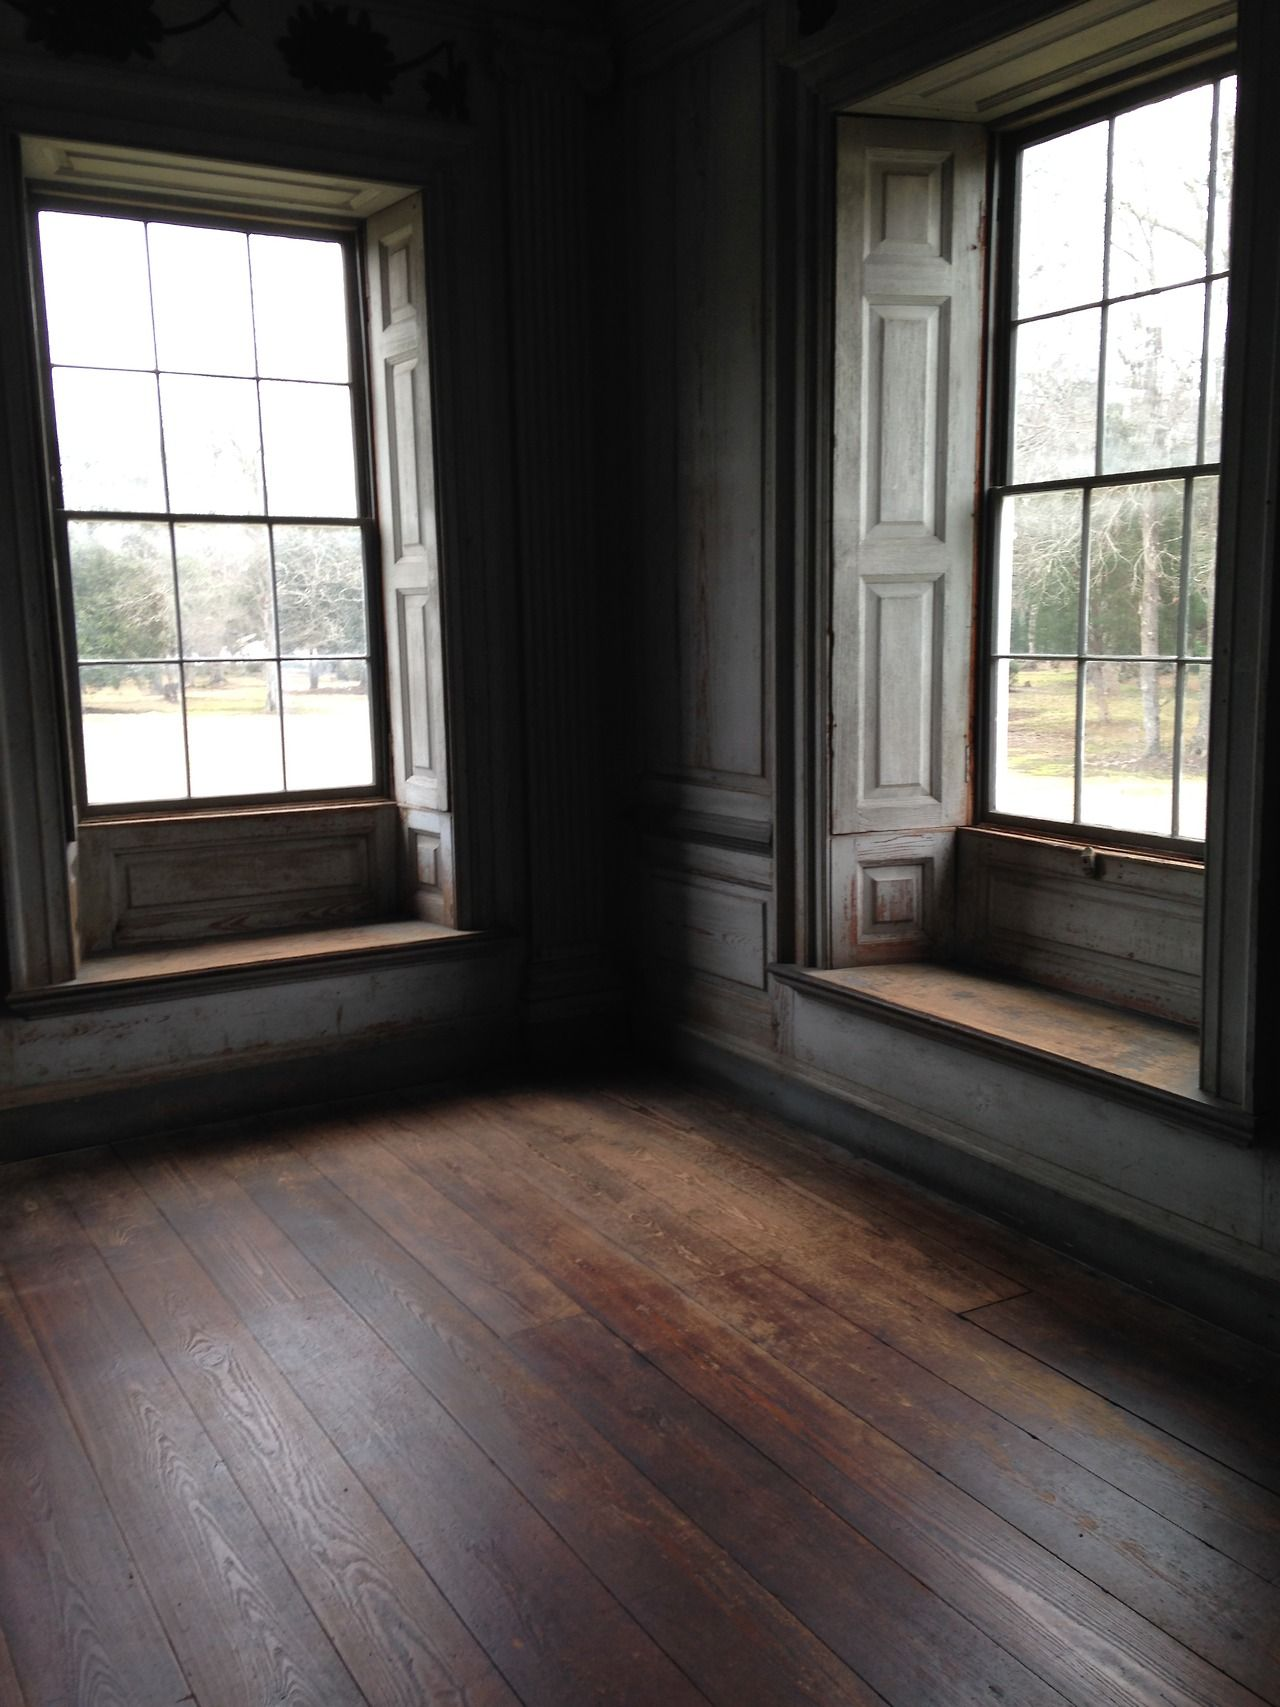 Window casing ideas  draytonhall southern pine floors in the withdrawing room drayton